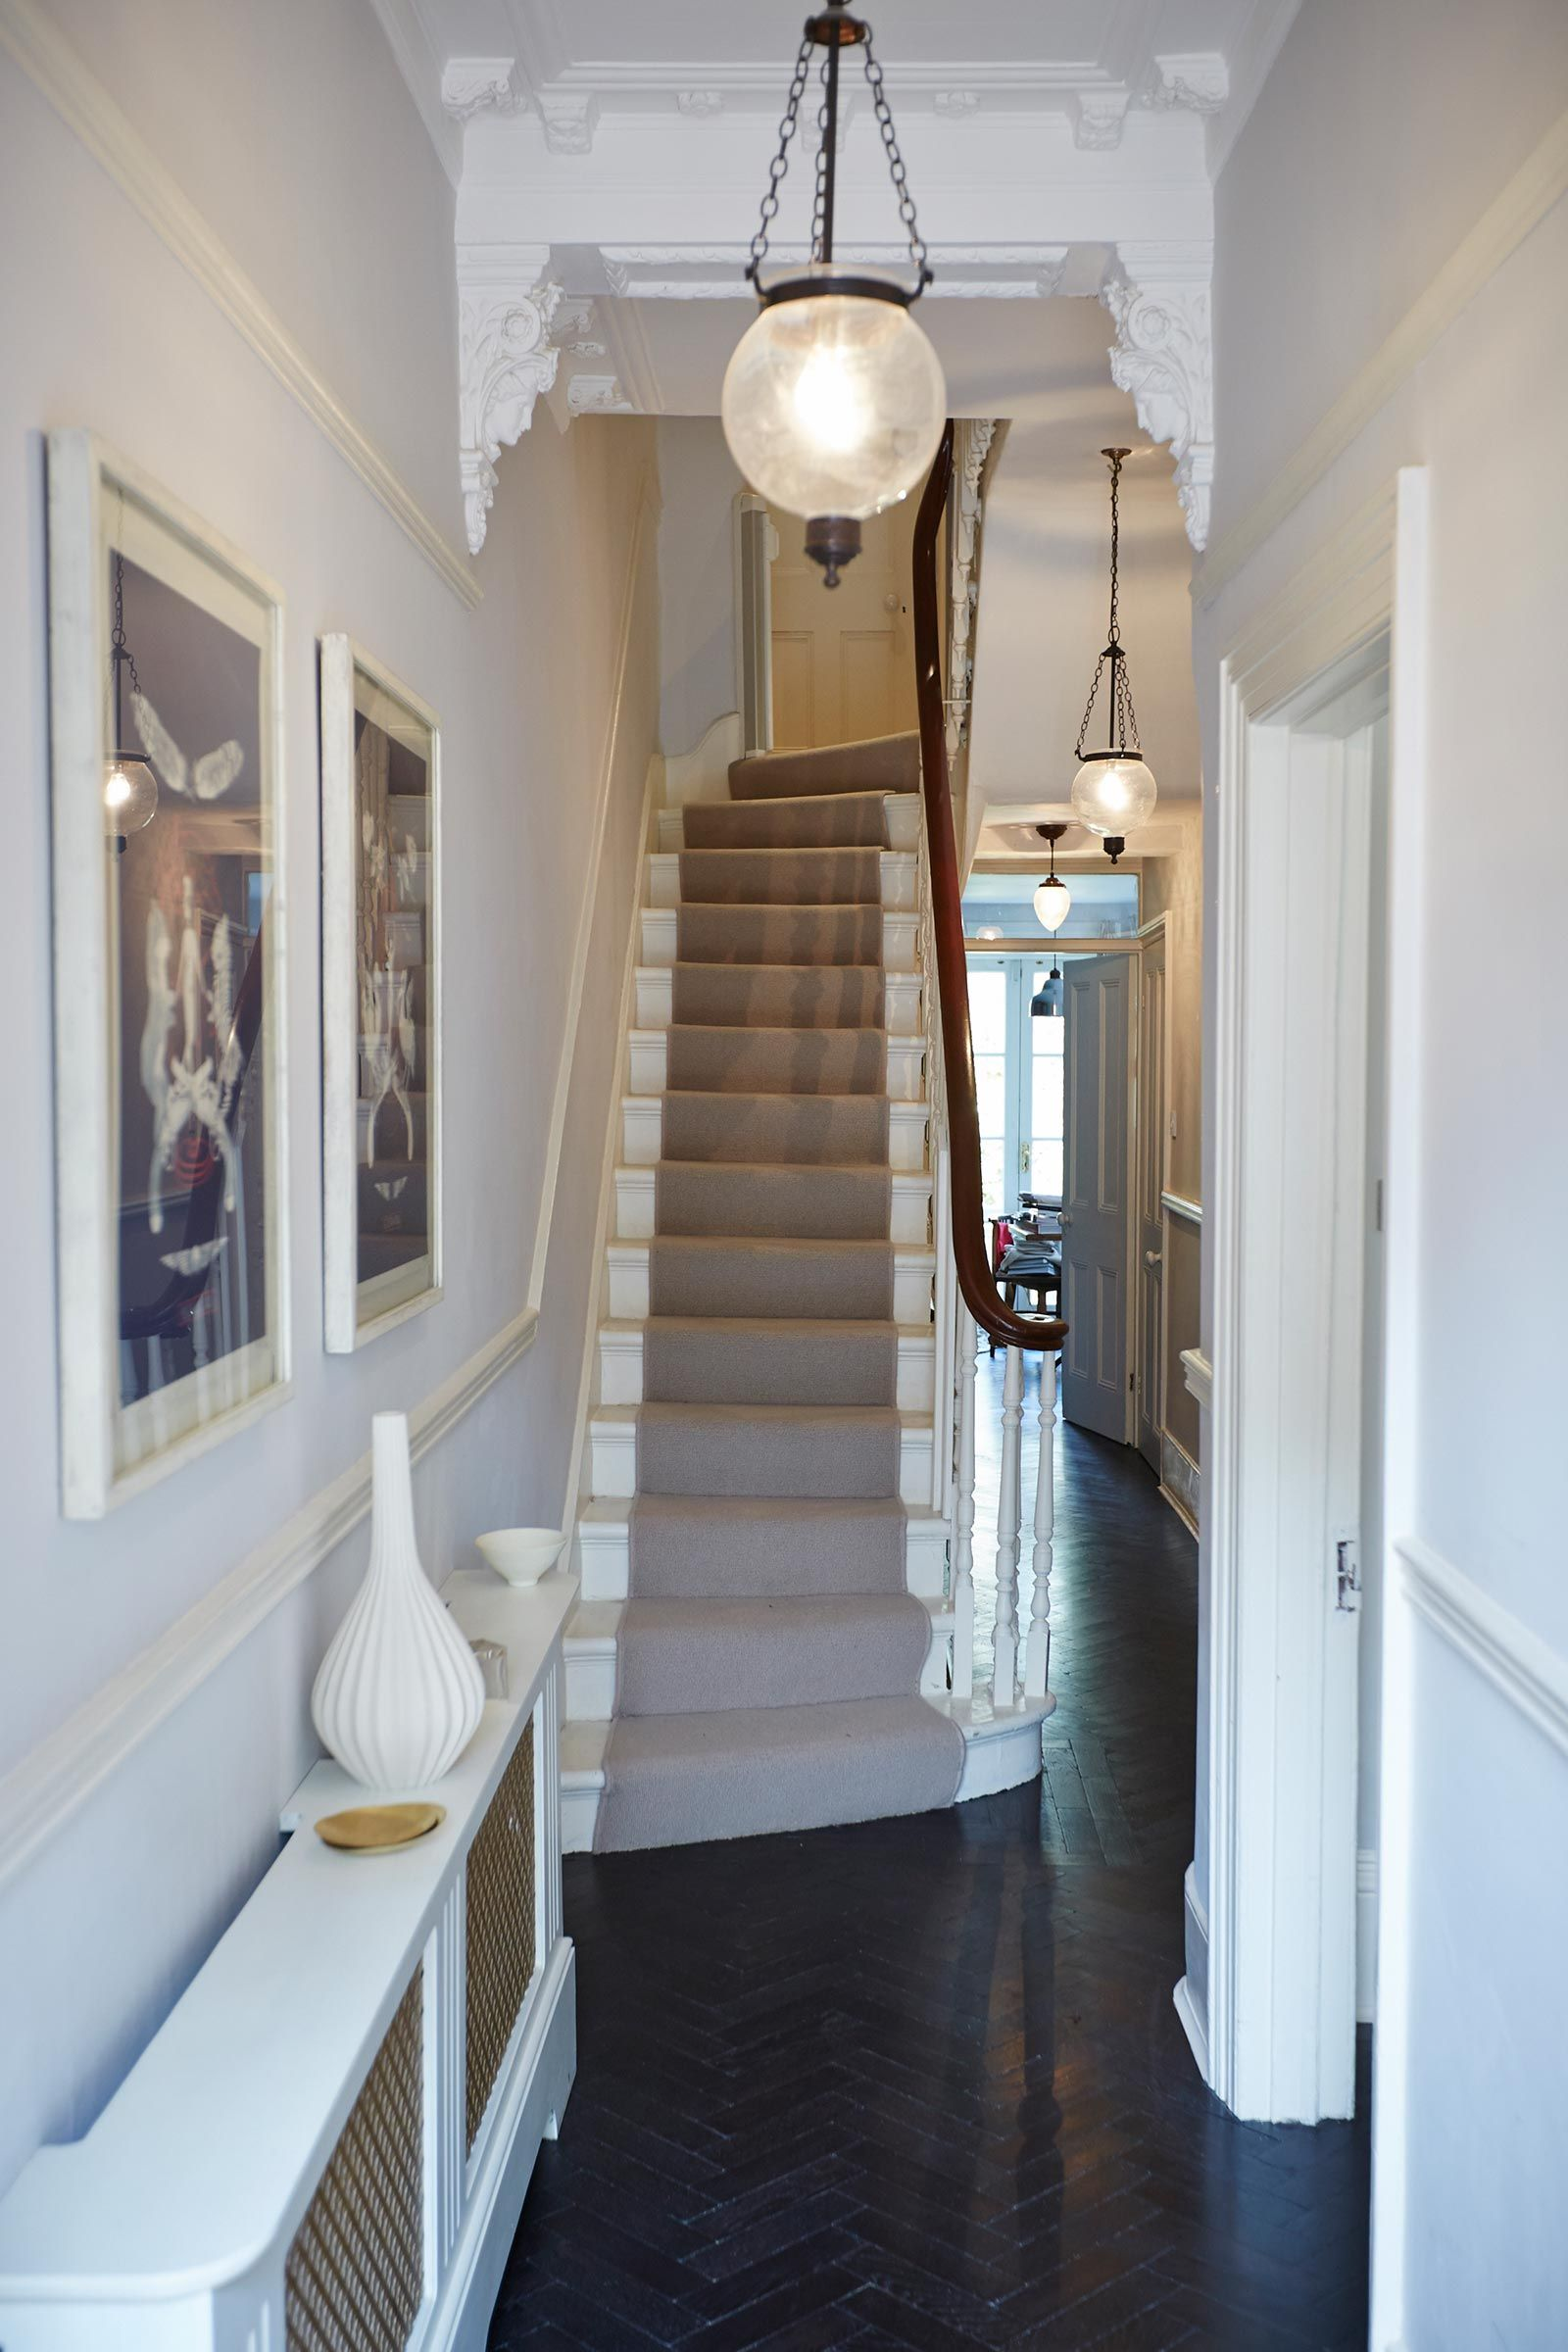 White walls and picture frames in hallway interior Design ideas for hallways and stairs